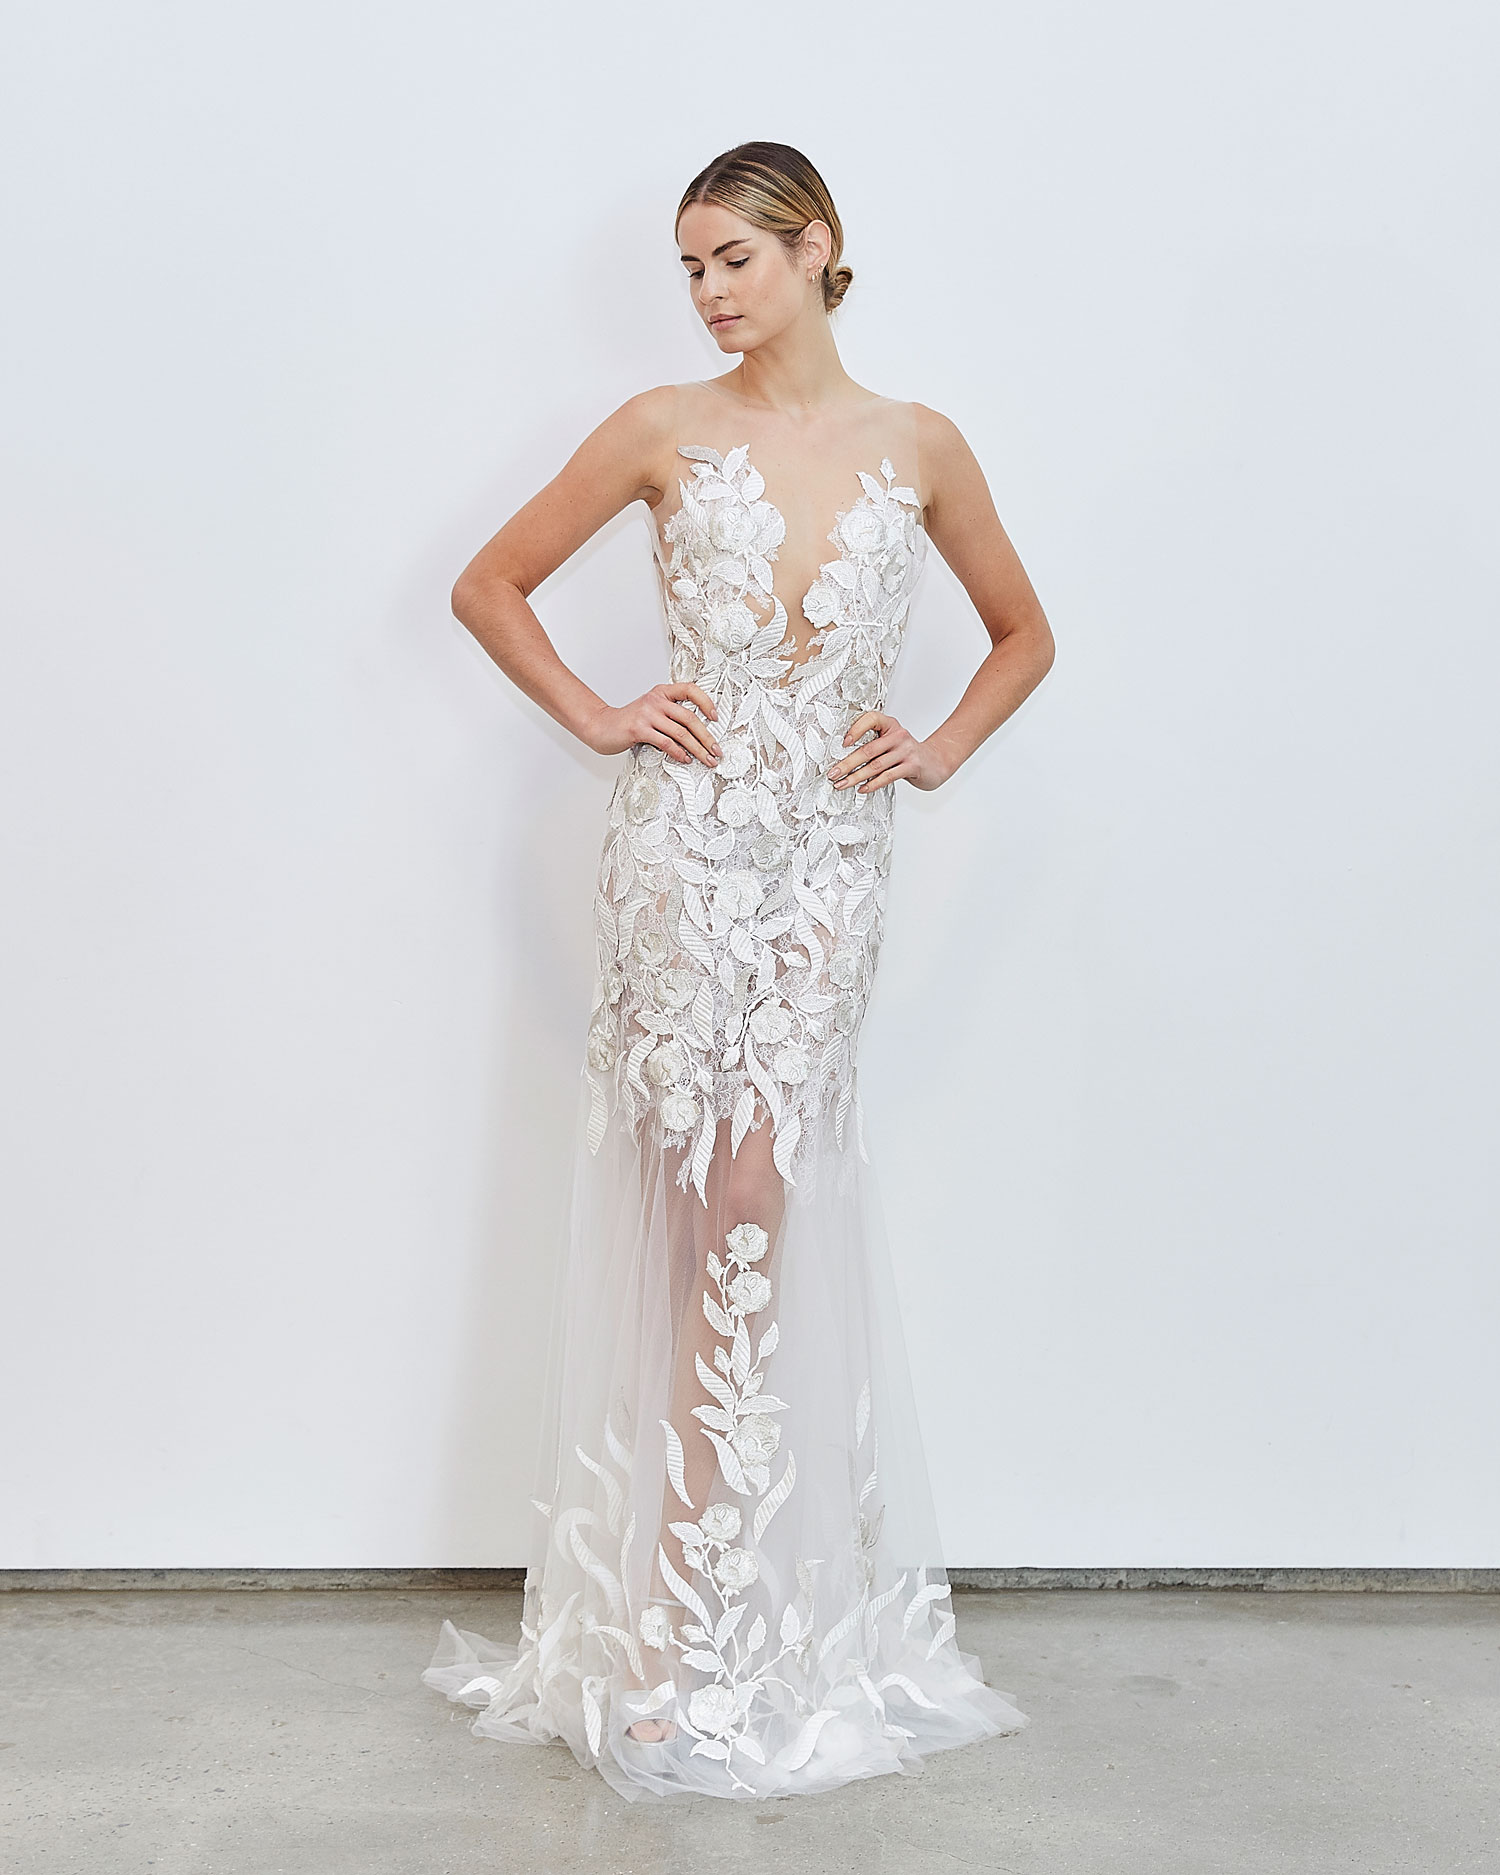 Francesca Miranda Fall 2020 bridal collection Shiloh wedding dress flower embroidery sheer details